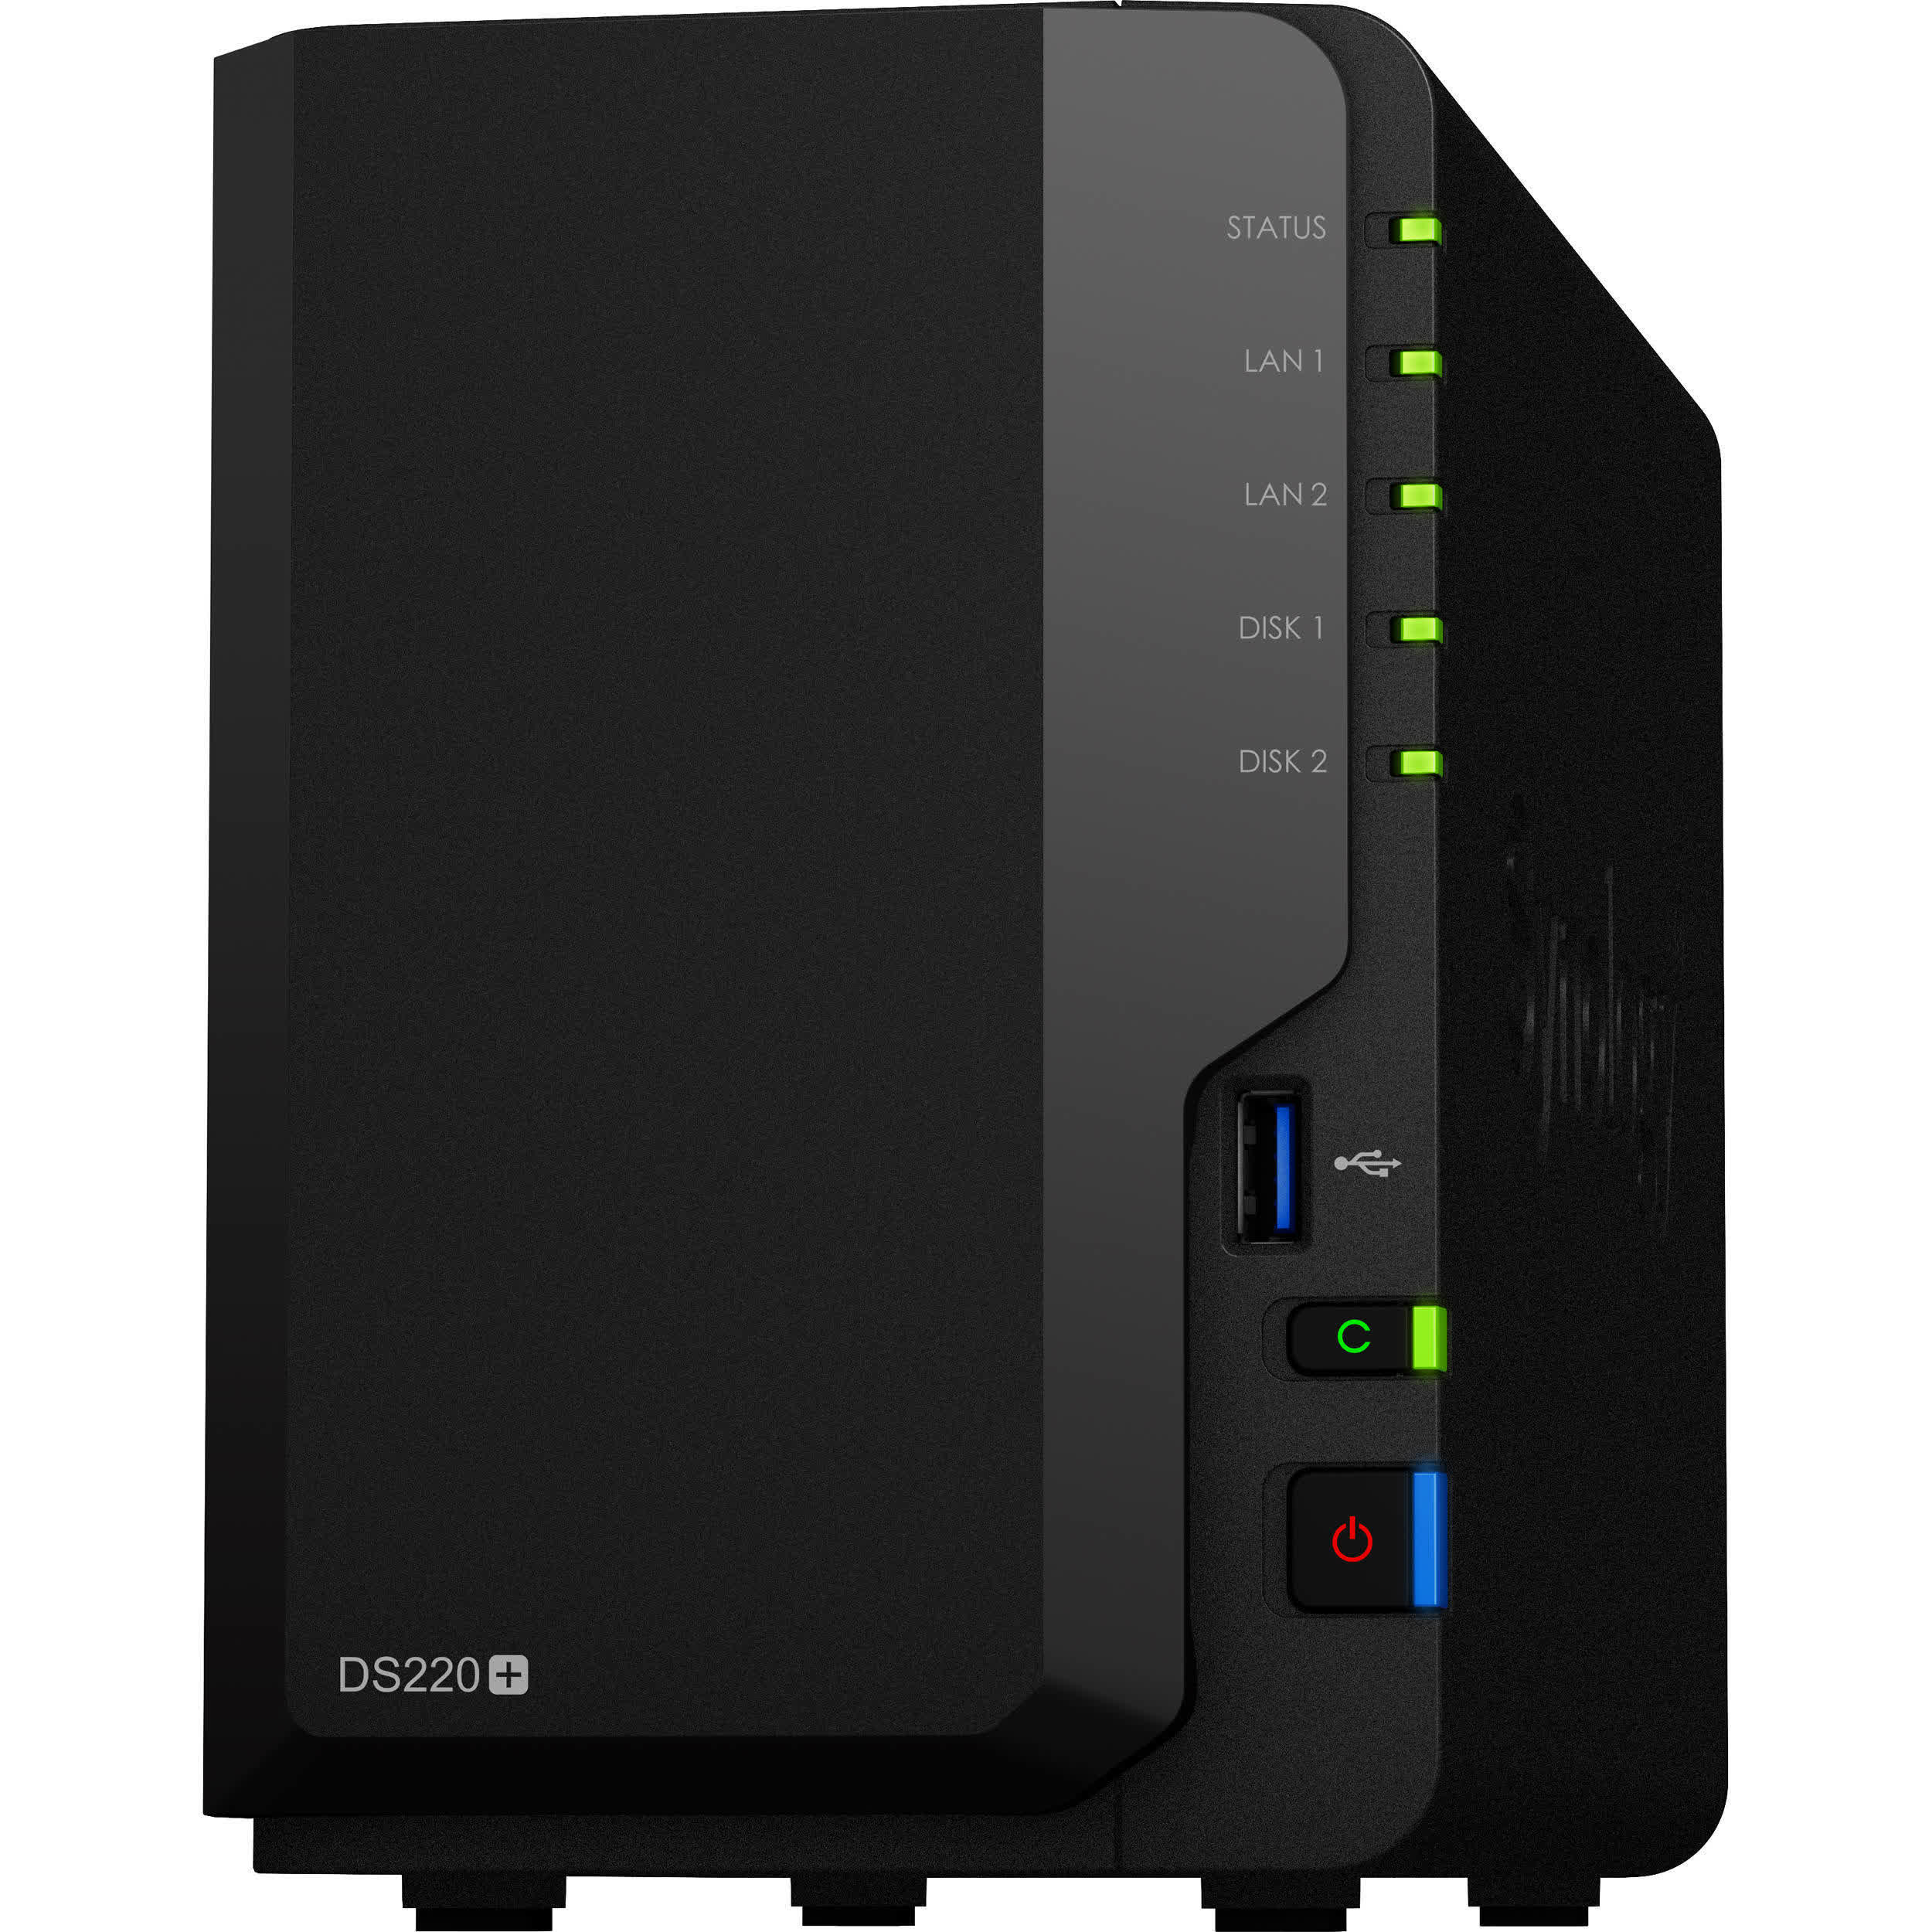 Synology DS220+ 2-bay USB3